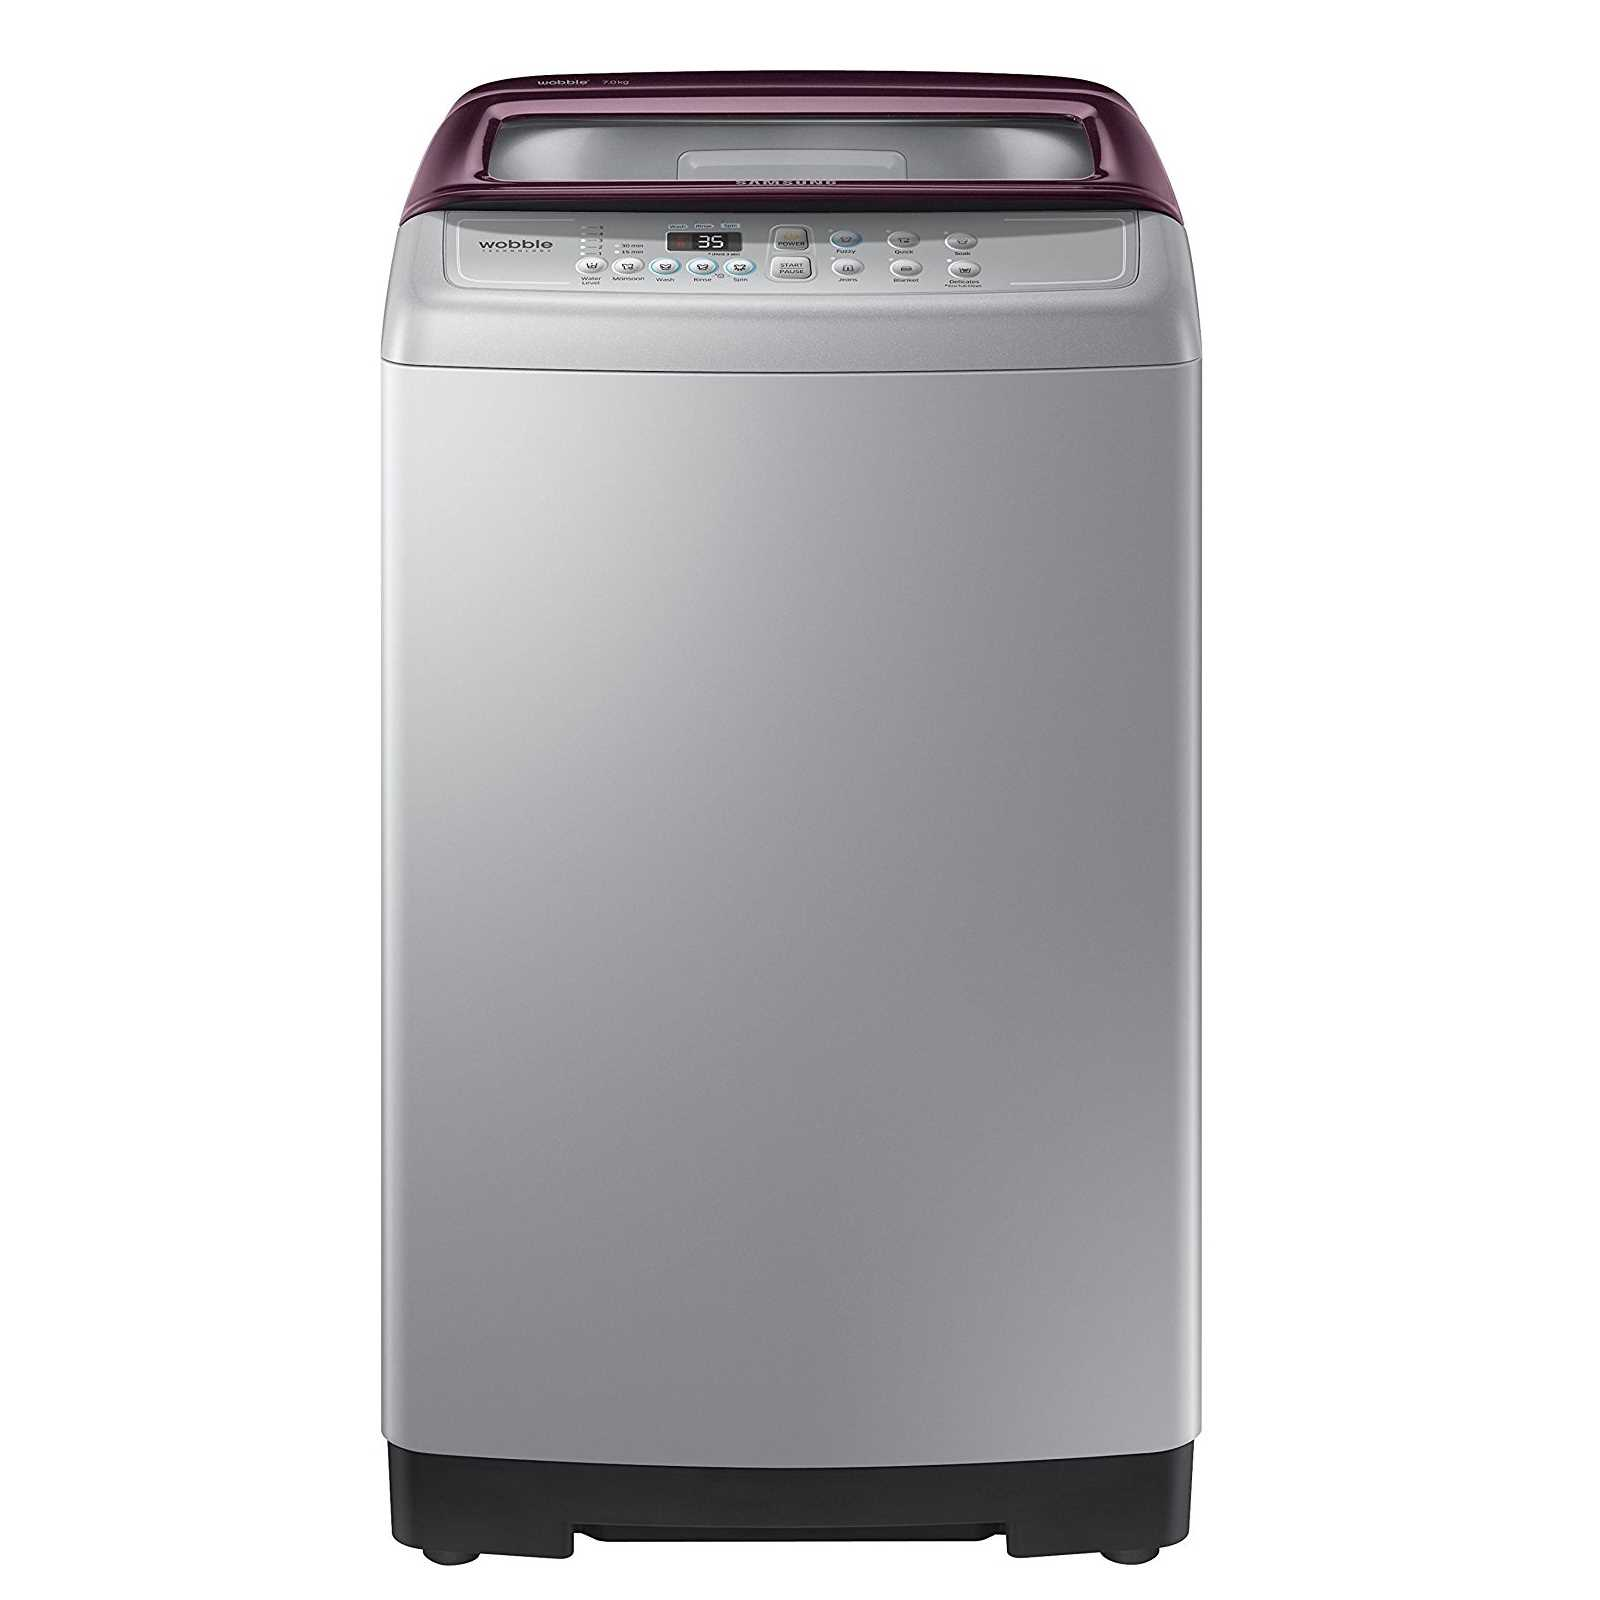 Samsung WA70M4300HP 7 Kg Fully Automatic Top Loading Washing Machine